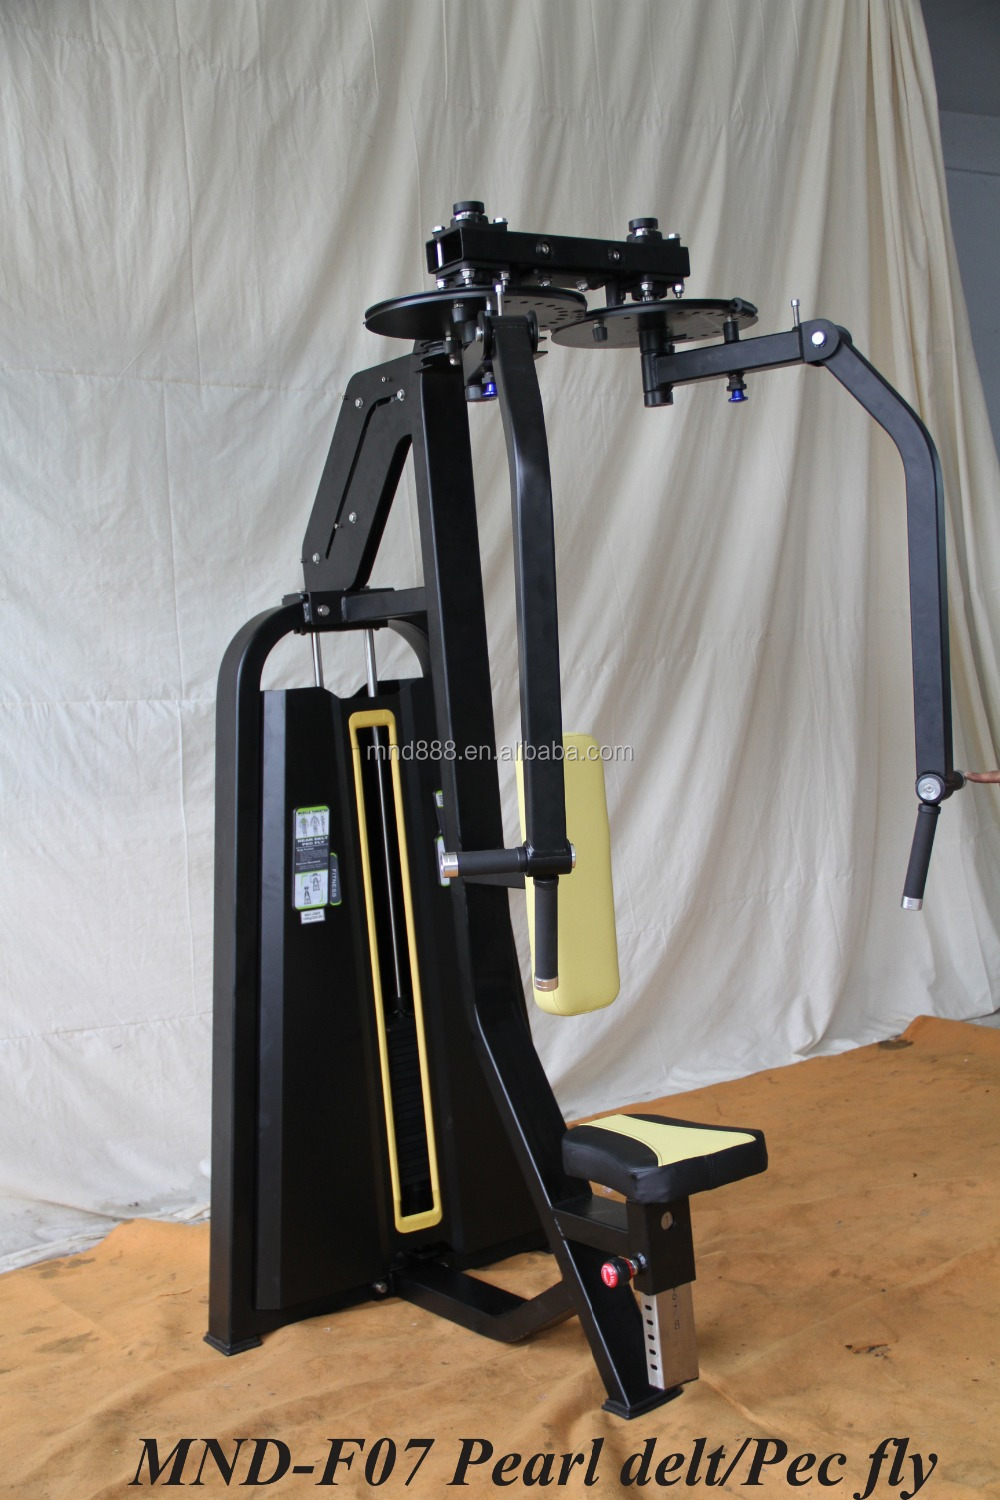 Pearl Delt/Pec Fly factory directly sale commercial fitness equipment/ indoor gym fitness equipment